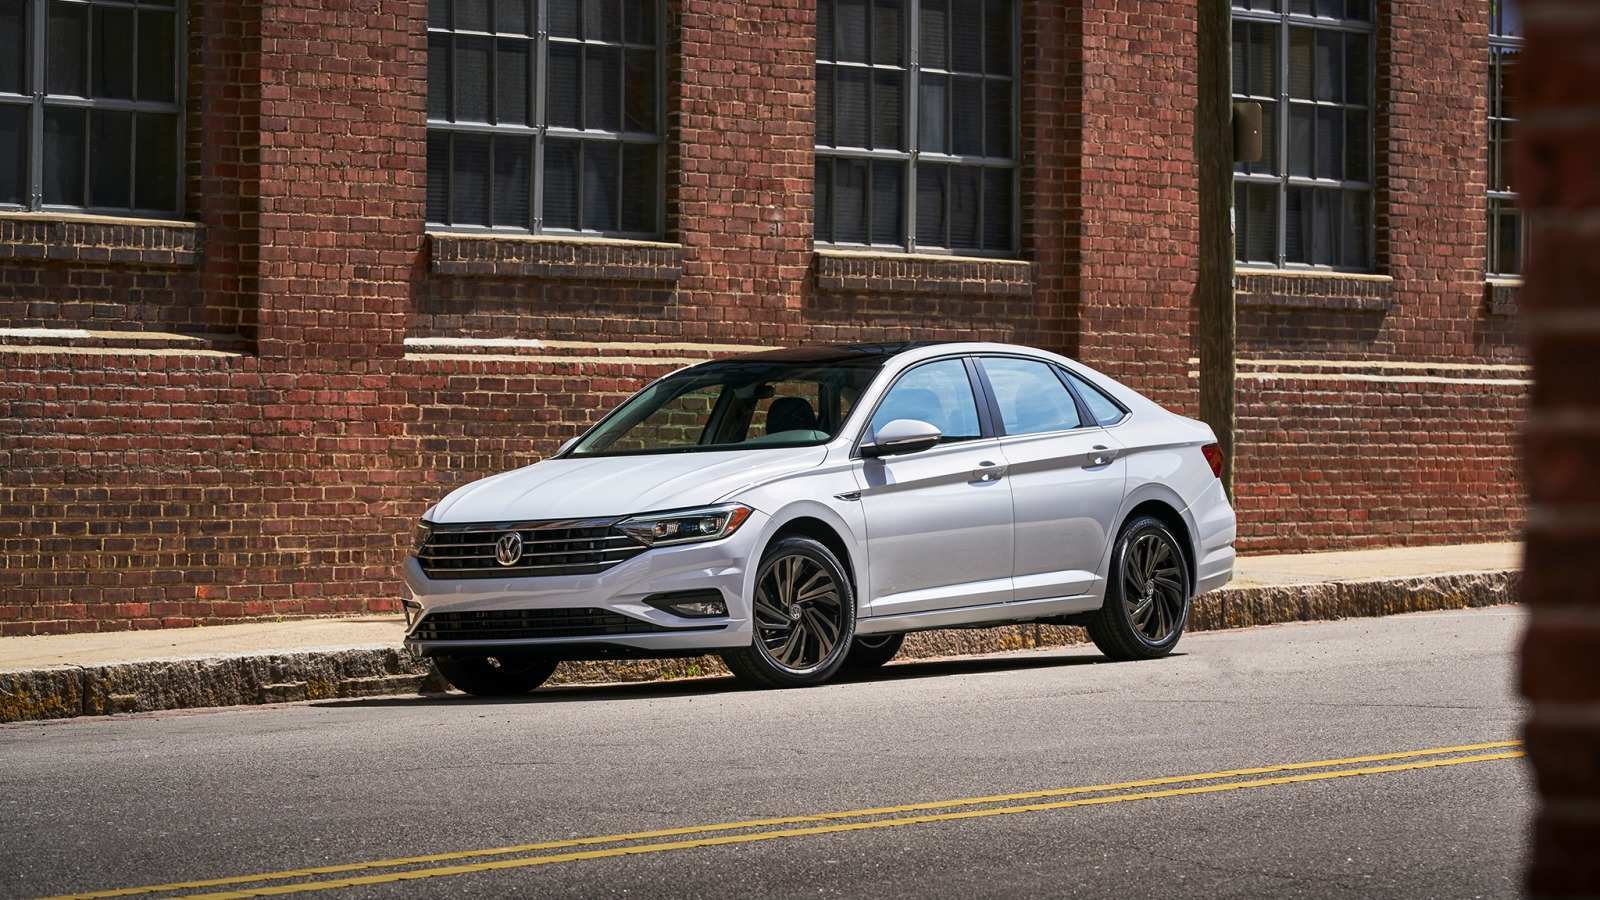 75 All New The Pictures Of 2019 Volkswagen Jetta Spesification Prices with The Pictures Of 2019 Volkswagen Jetta Spesification